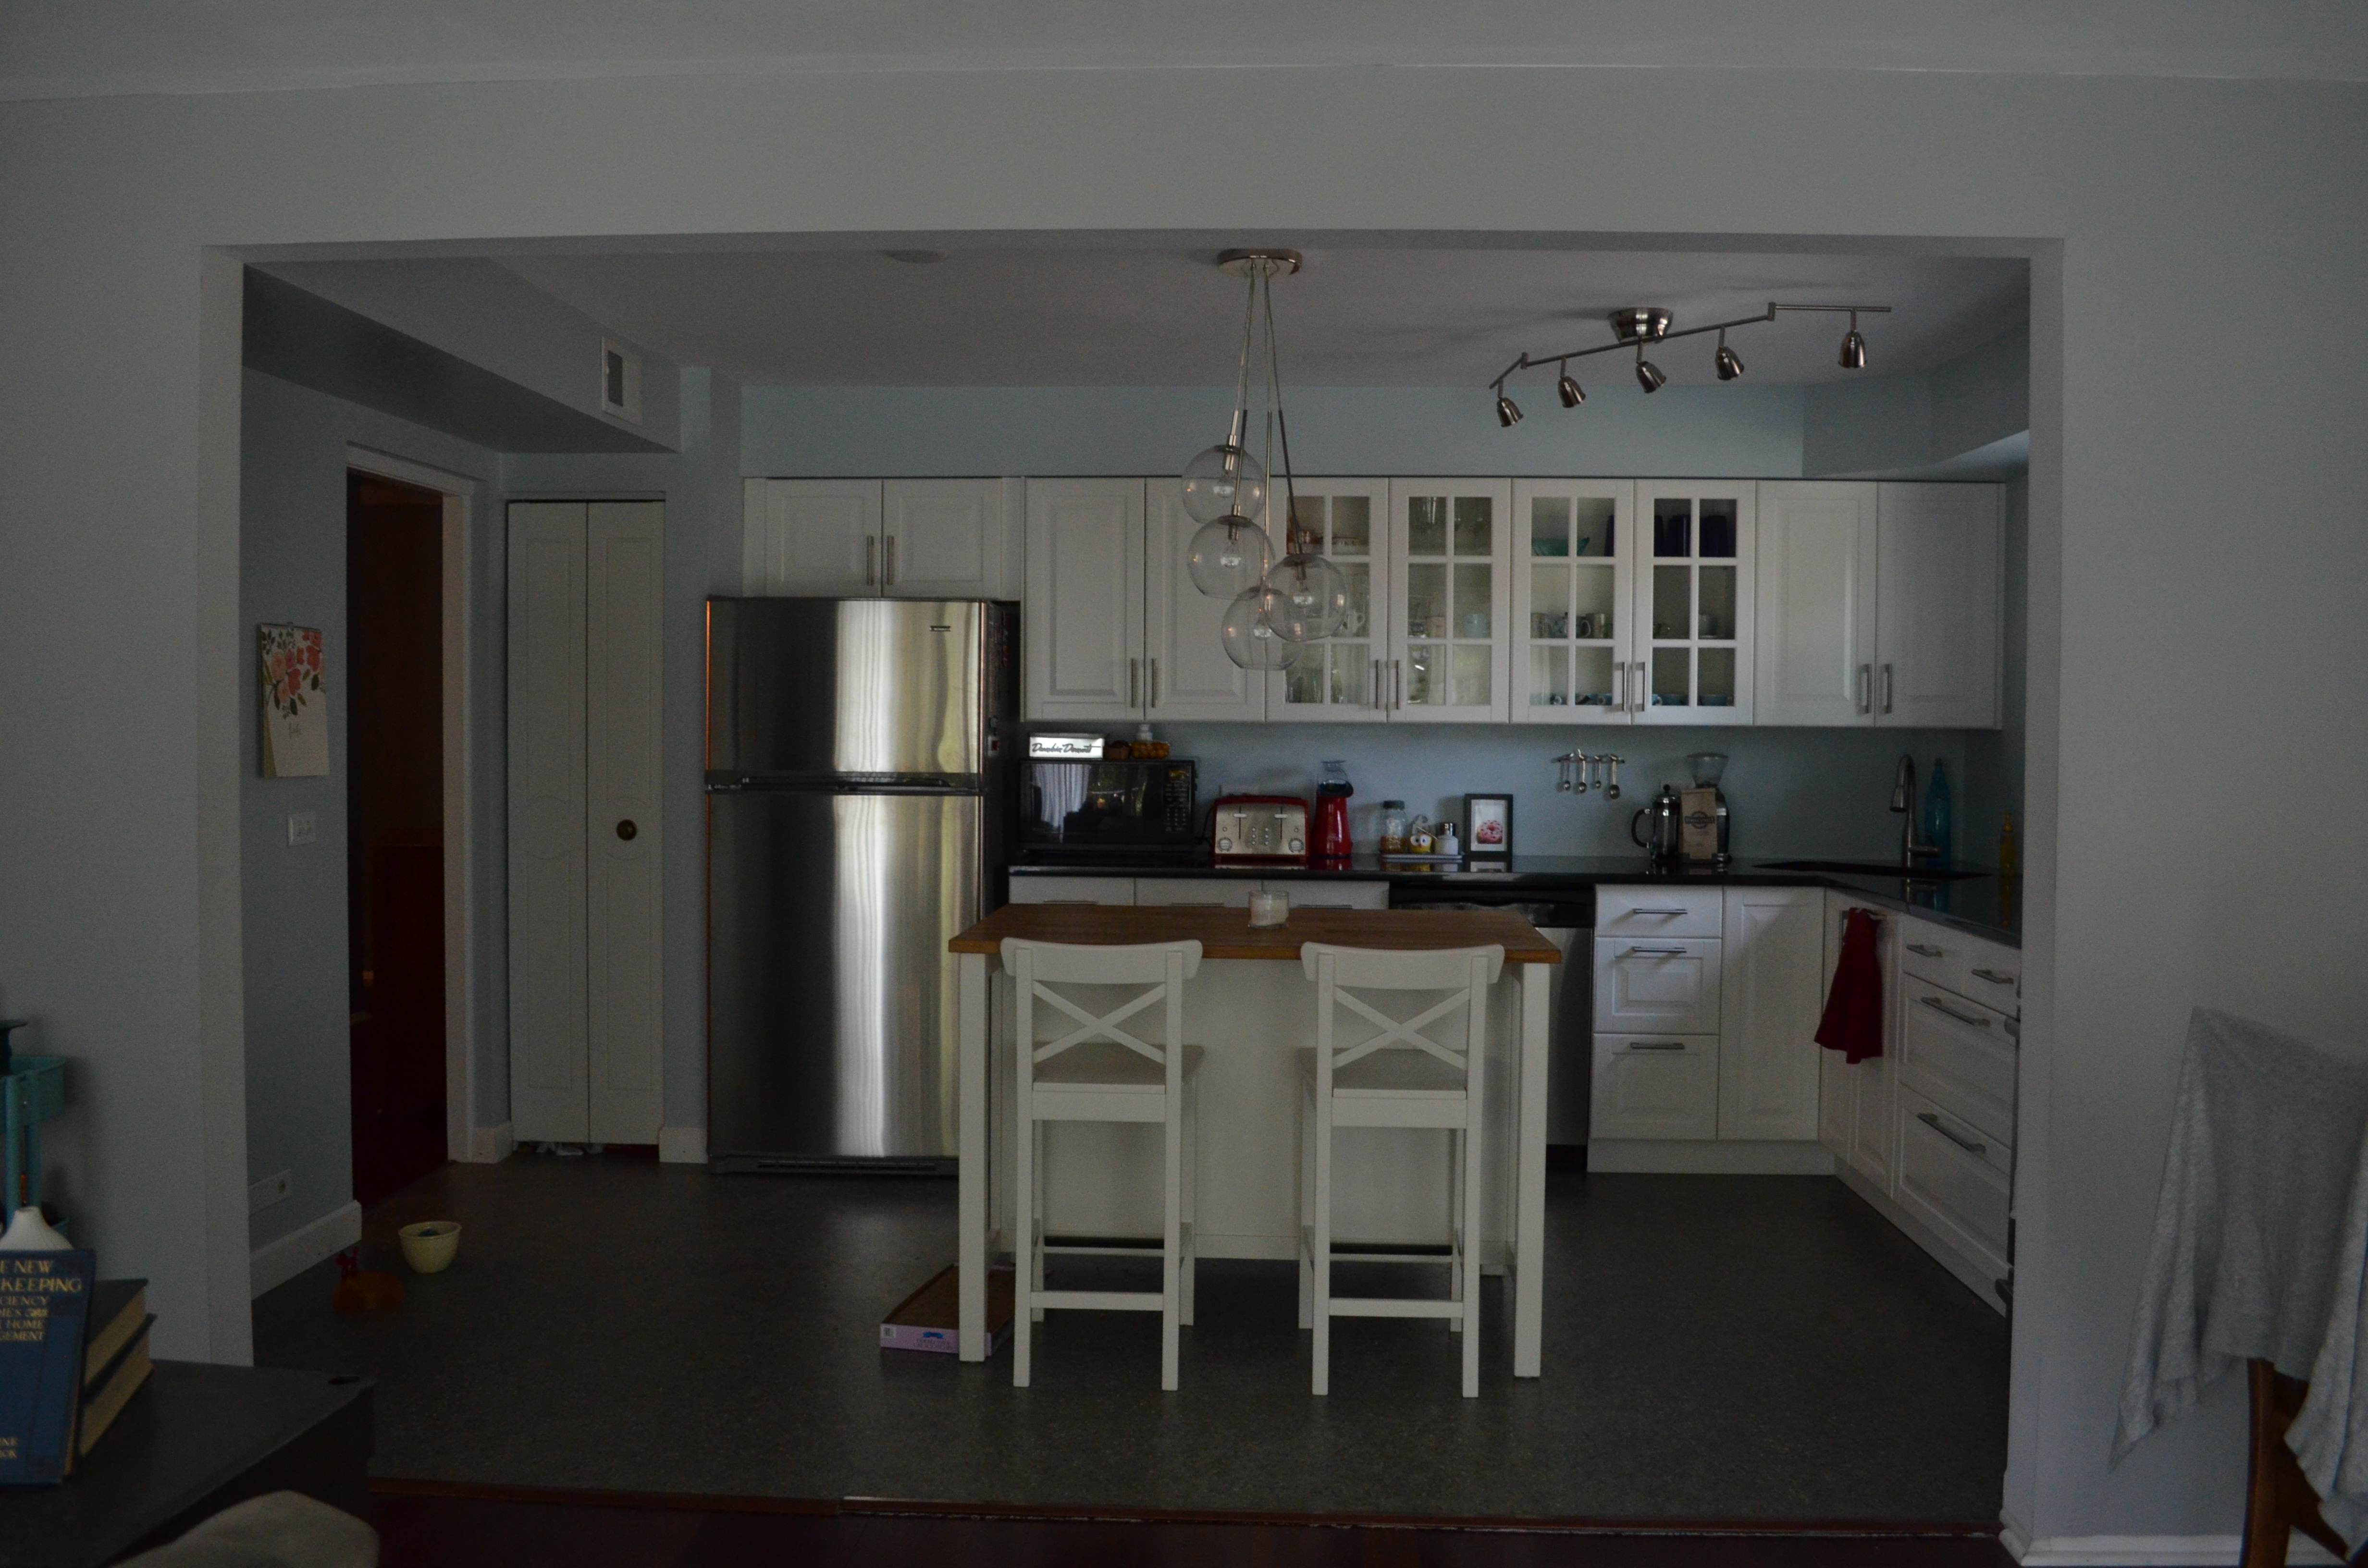 So Thatu0027s The Kitchen. I Have A Few More Pieces Of Art Iu0027d Like To Hang And  We Would Love A Real Back Splash, But Otherwise, We Are Thrilled With The  ...